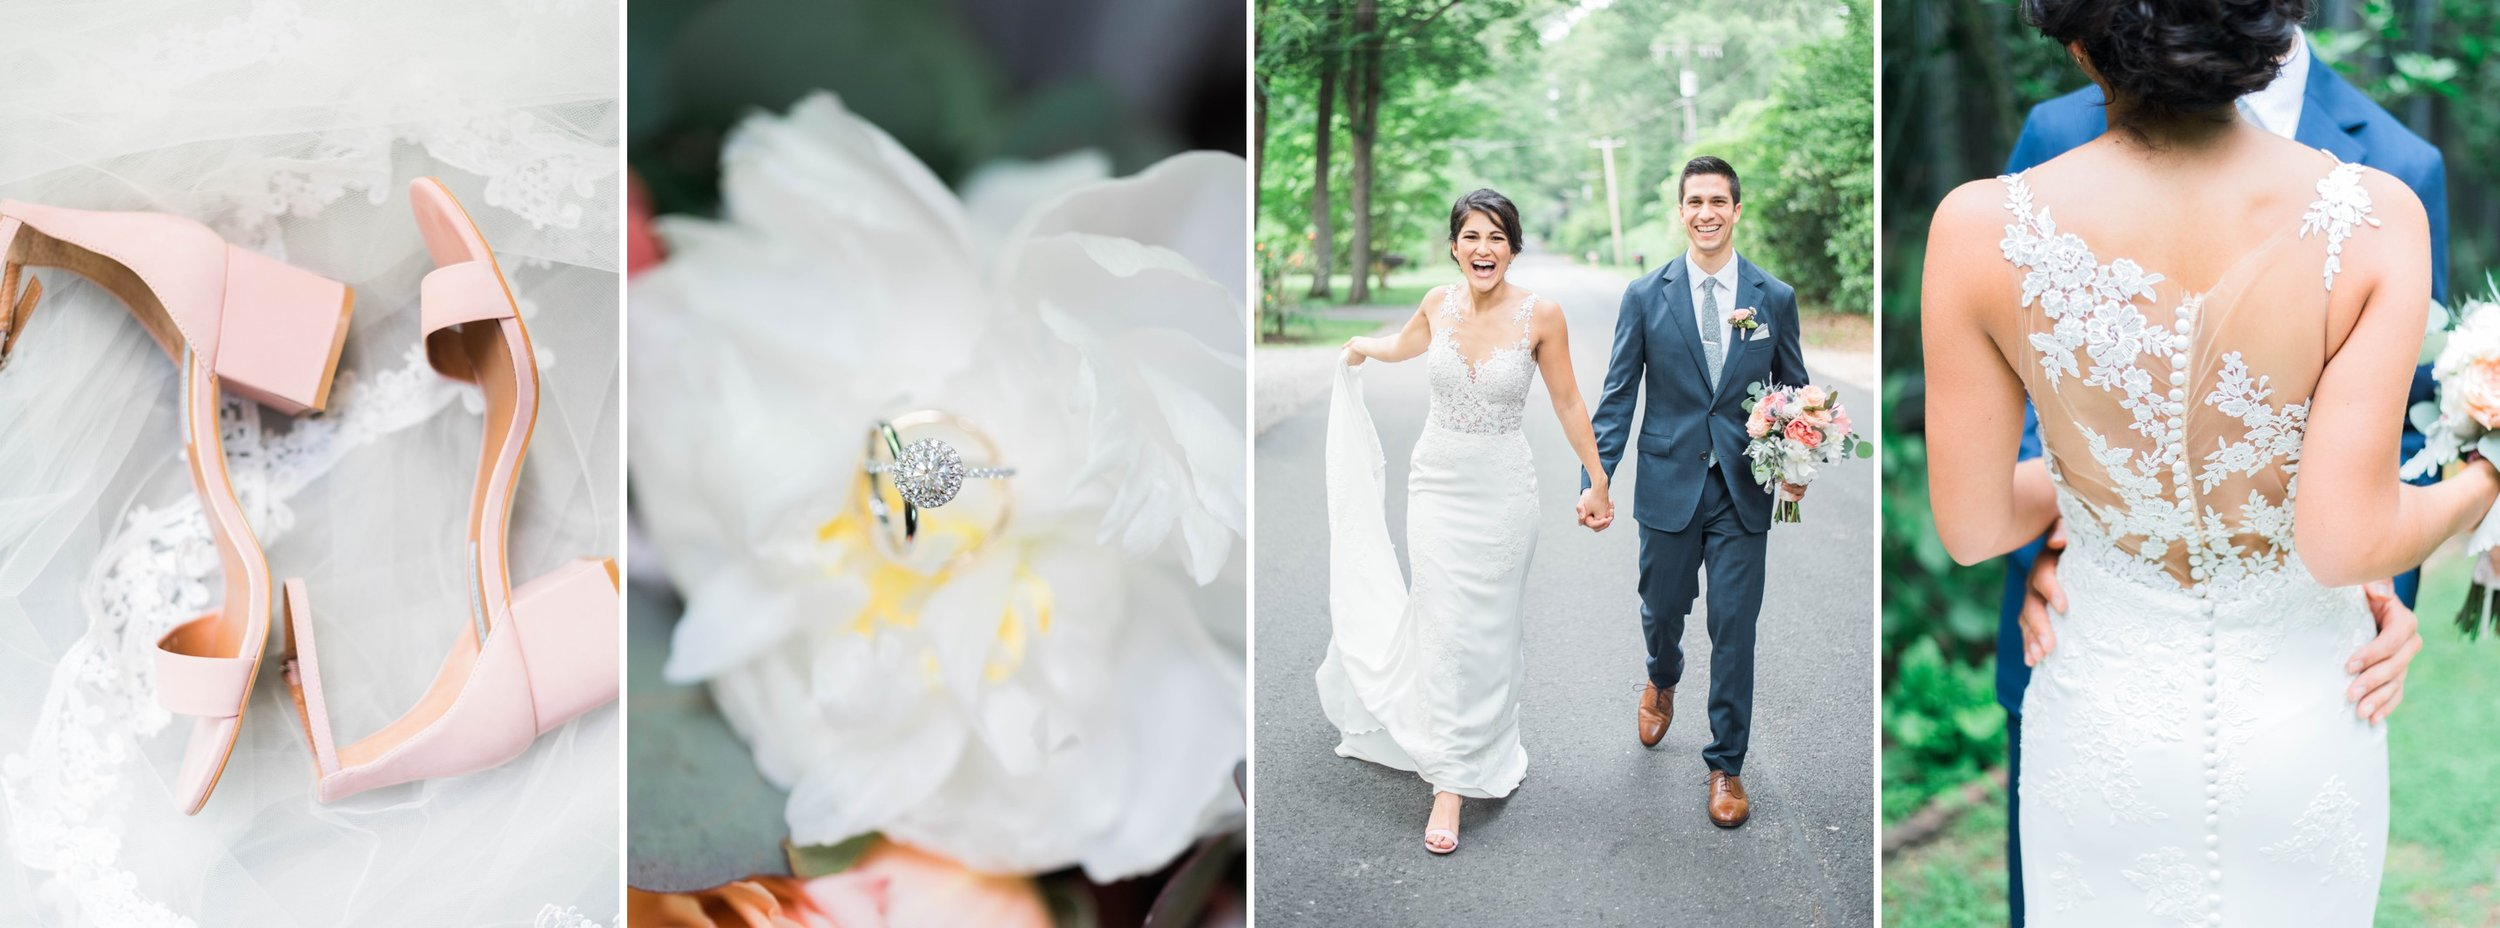 Williamsburgvawedding_backyardwedding_virginiaweddingphotographer_lynchburgweddingphotographer_PaulAliya 43.jpg